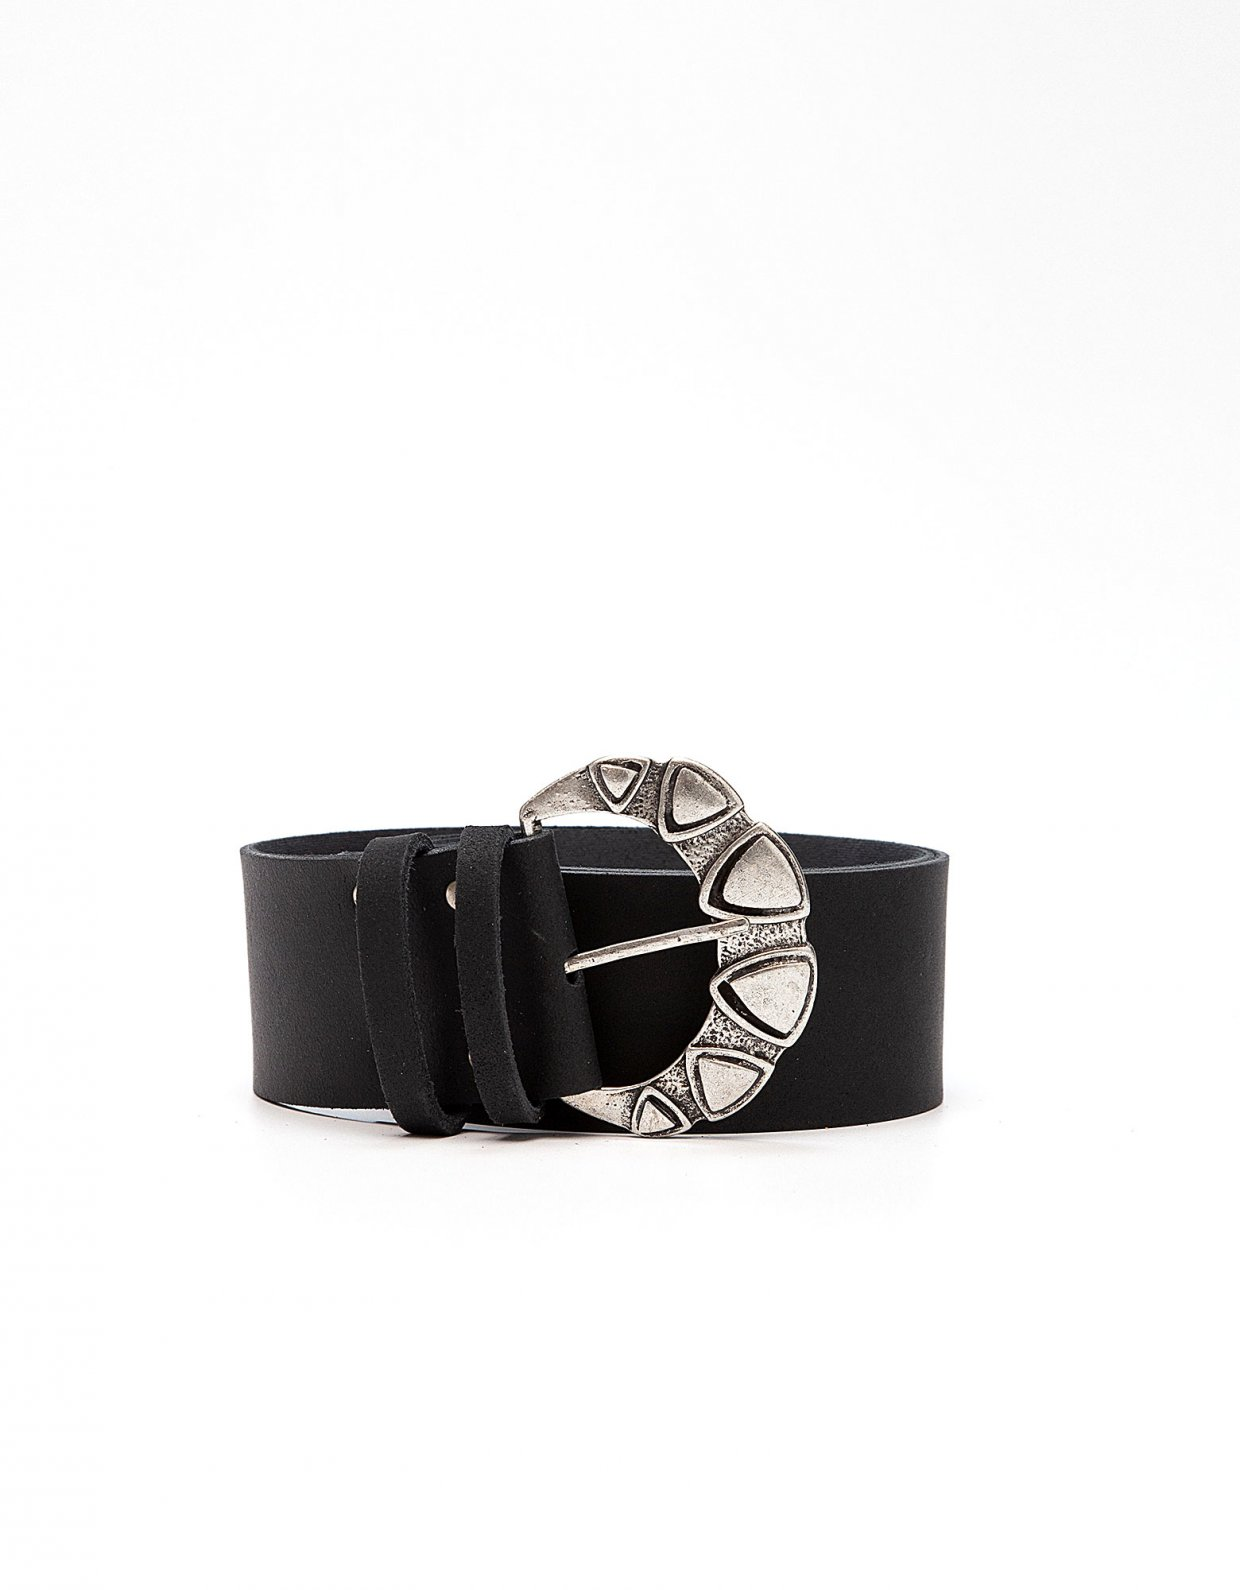 Peace & Chaos Triangles leather belt black